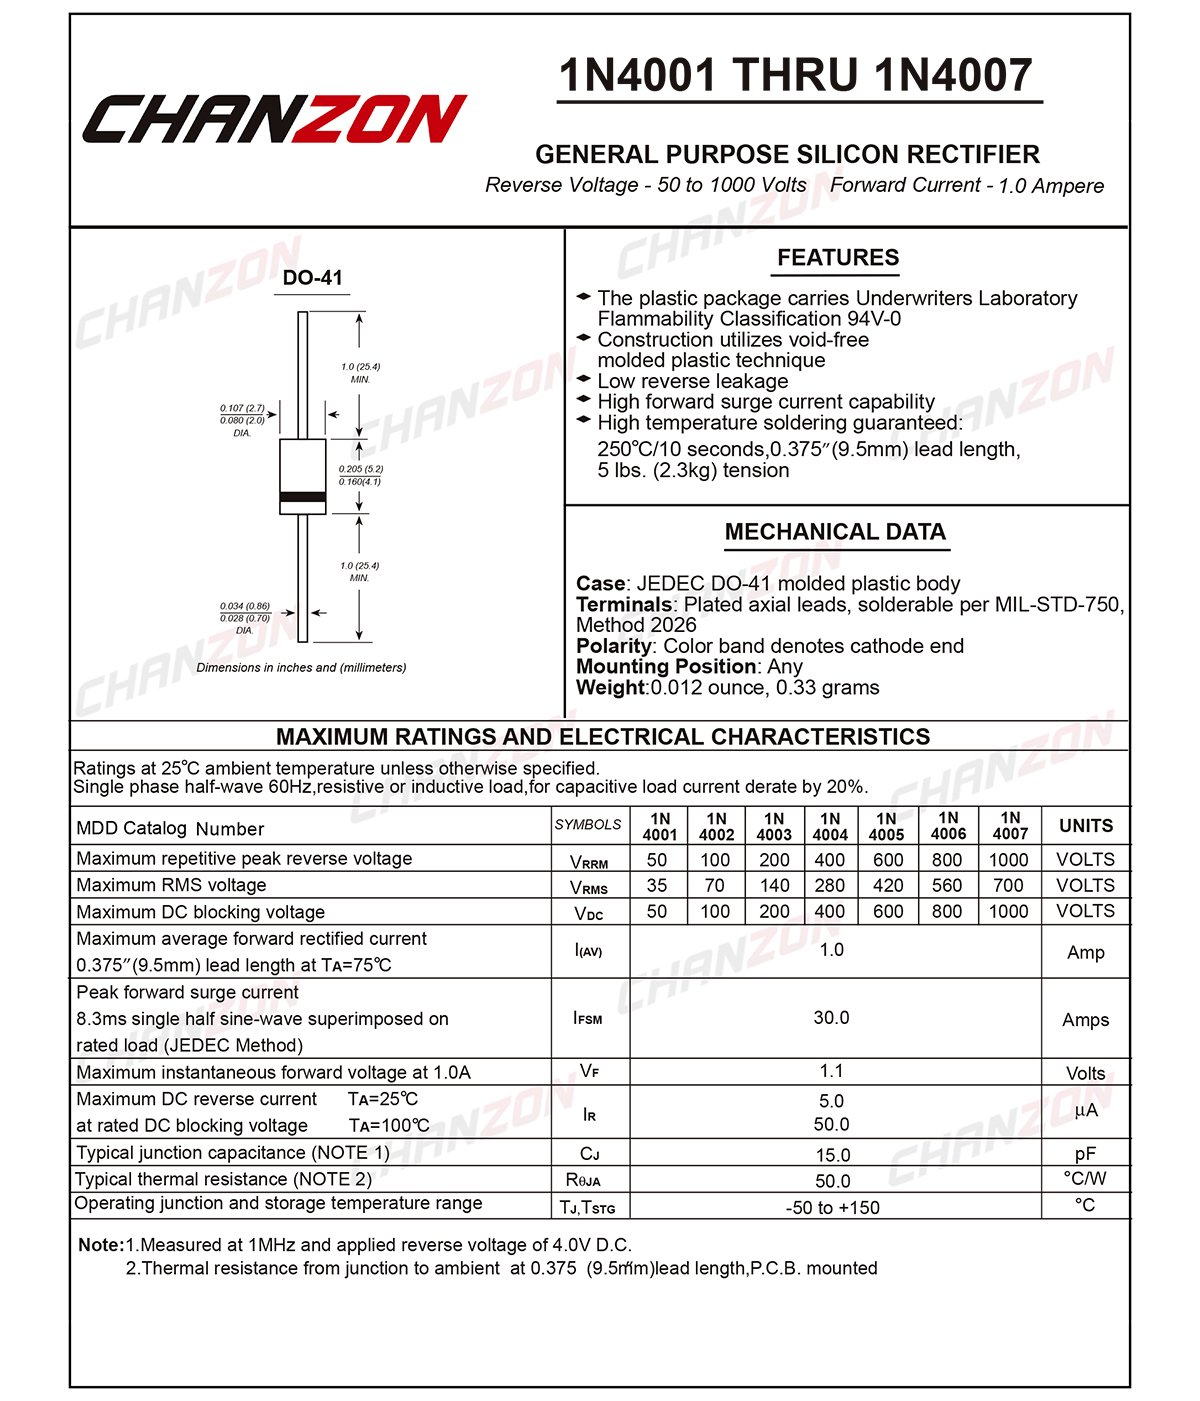 Pack Of 100 Pieces Chanzon 1n4007 Rectifier Diode 1a 1000v Do 41 Note All Diodes Used In Circuit Are In4007 The Transistor Is 204al Axial 4007 1 Amp 1000 Volt Electronic Silicon